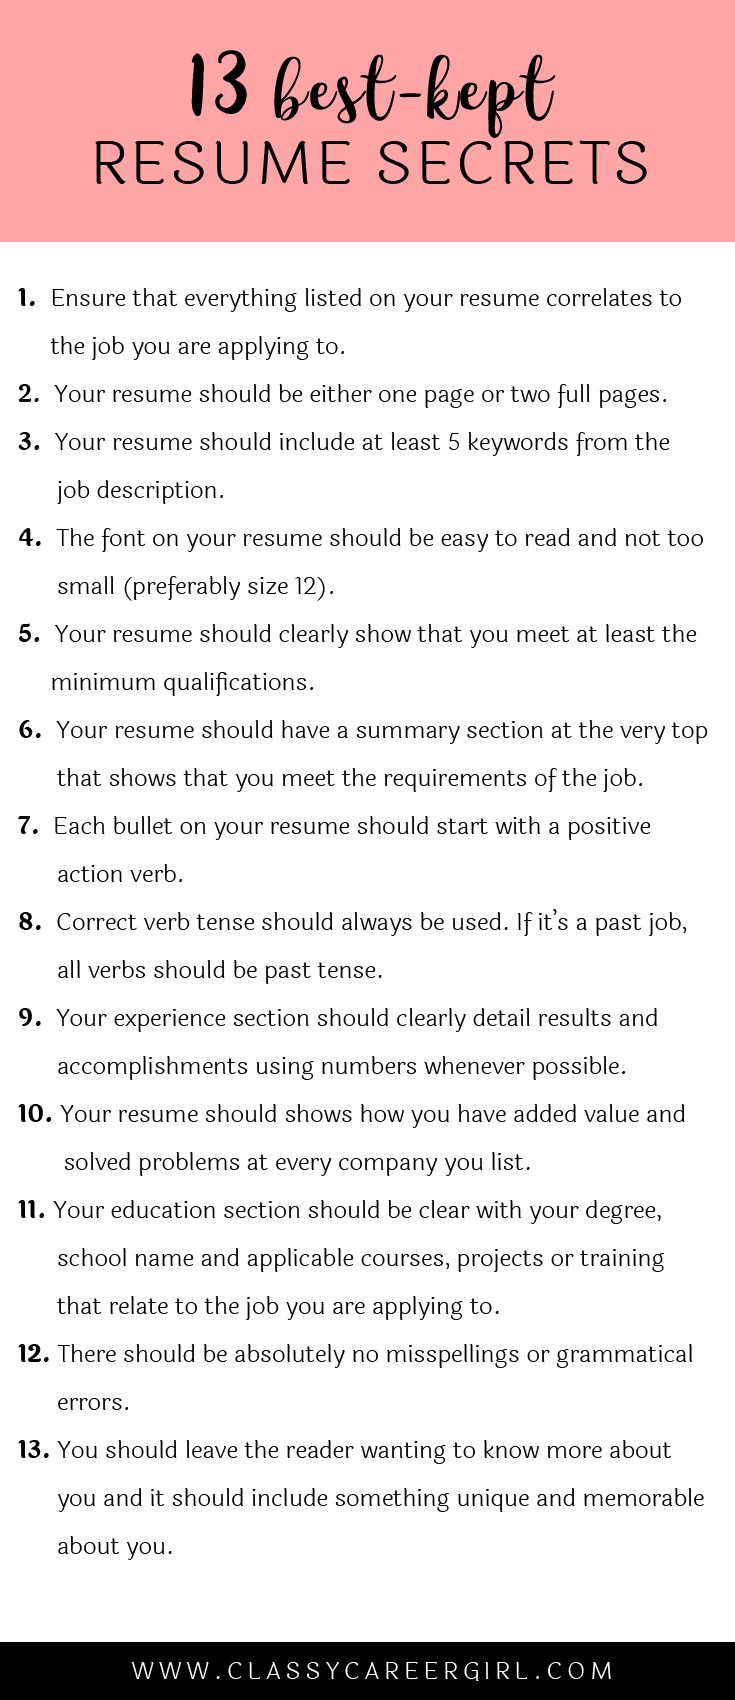 Opposenewapstandardsus  Winsome  Ideas About Resume On Pinterest  Cv Format Resume Cv And  With Excellent Some Hiring Managers Will Toss Your Resume Out If You Dont Know These  With Agreeable How To Write A Good Resume For A Job Also  Tips For Creating A Resume In Addition Follow Up On Resume And Resume Objective For Sales Associate As Well As How To Create A Resume Online Additionally What Is Objective In A Resume From Pinterestcom With Opposenewapstandardsus  Excellent  Ideas About Resume On Pinterest  Cv Format Resume Cv And  With Agreeable Some Hiring Managers Will Toss Your Resume Out If You Dont Know These  And Winsome How To Write A Good Resume For A Job Also  Tips For Creating A Resume In Addition Follow Up On Resume From Pinterestcom